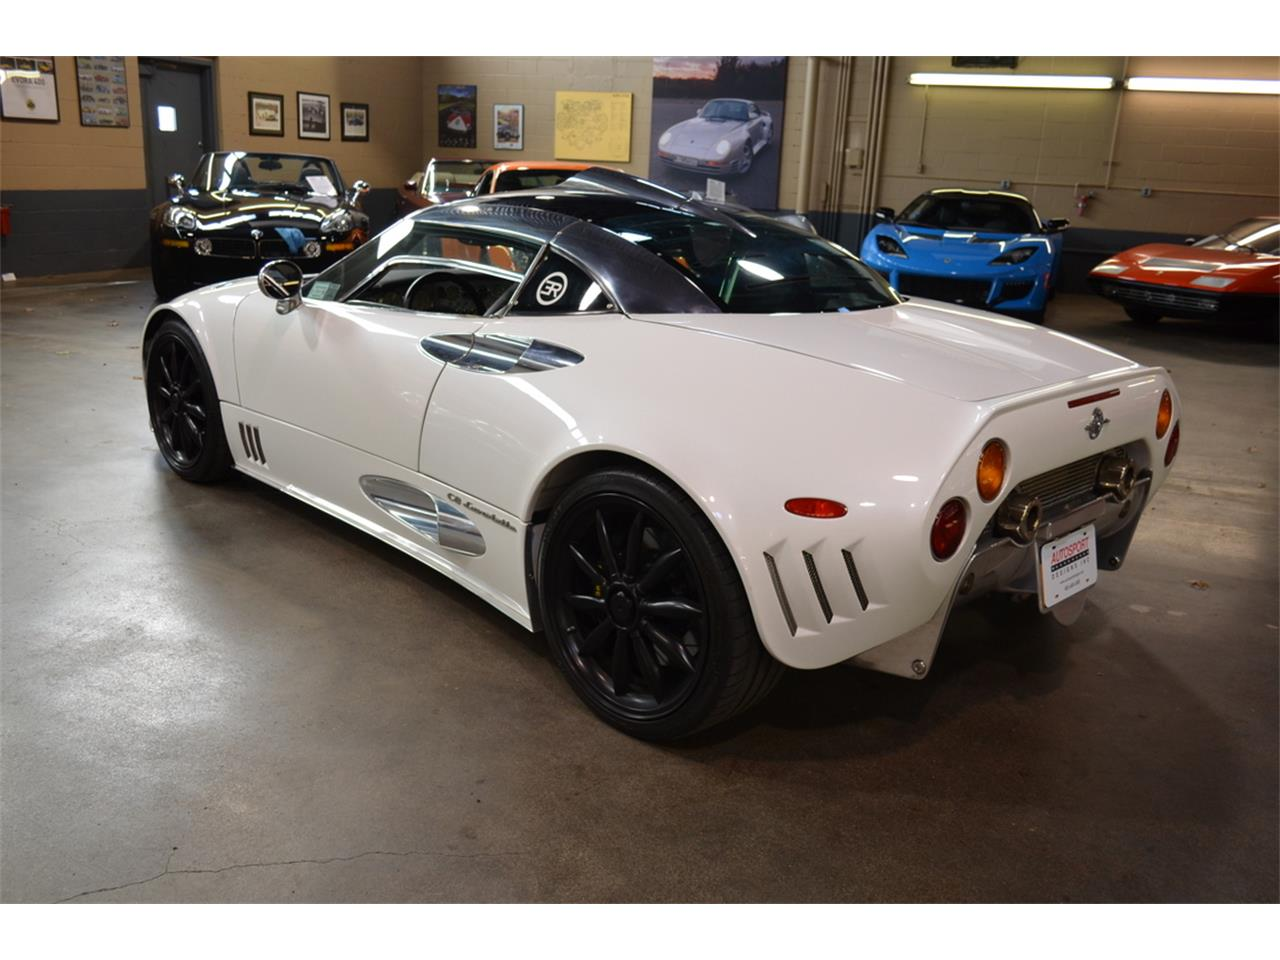 2010 Spyker C8 for sale in Huntington Station, NY – photo 5